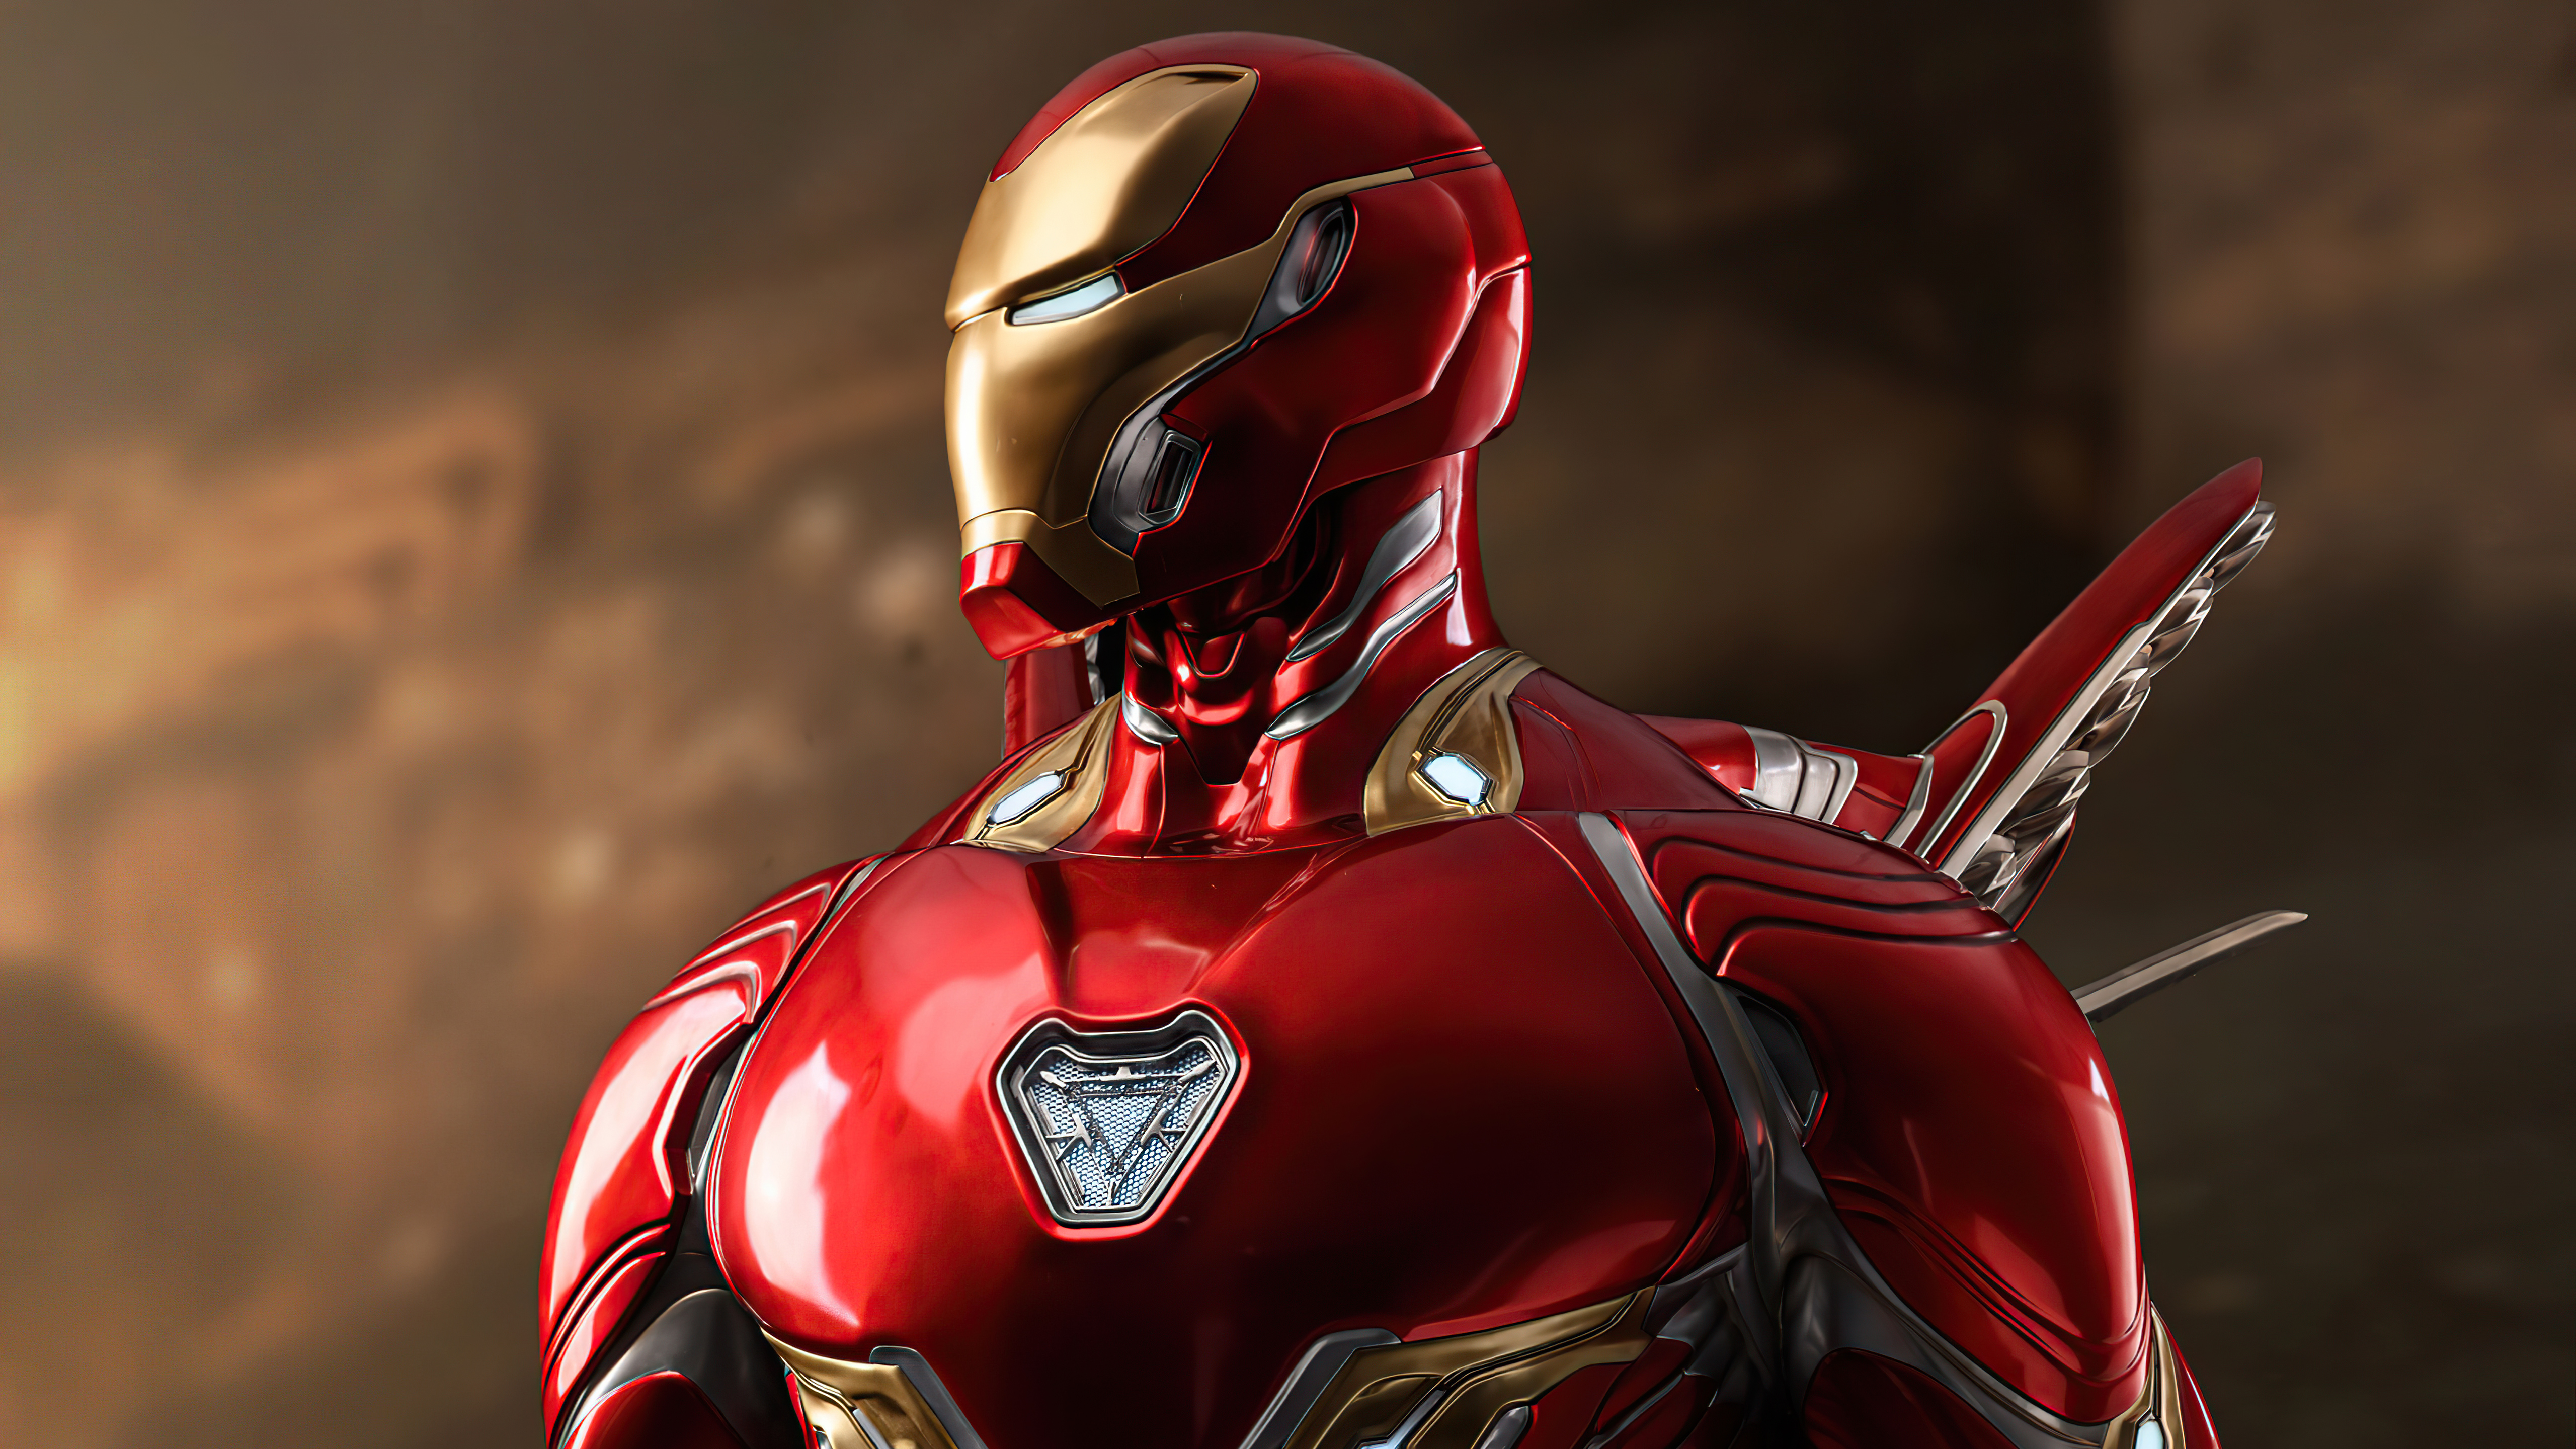 iron man 2020 4k 1619216301 - Iron Man 2020 4k - Iron Man 2020 4k wallpapers